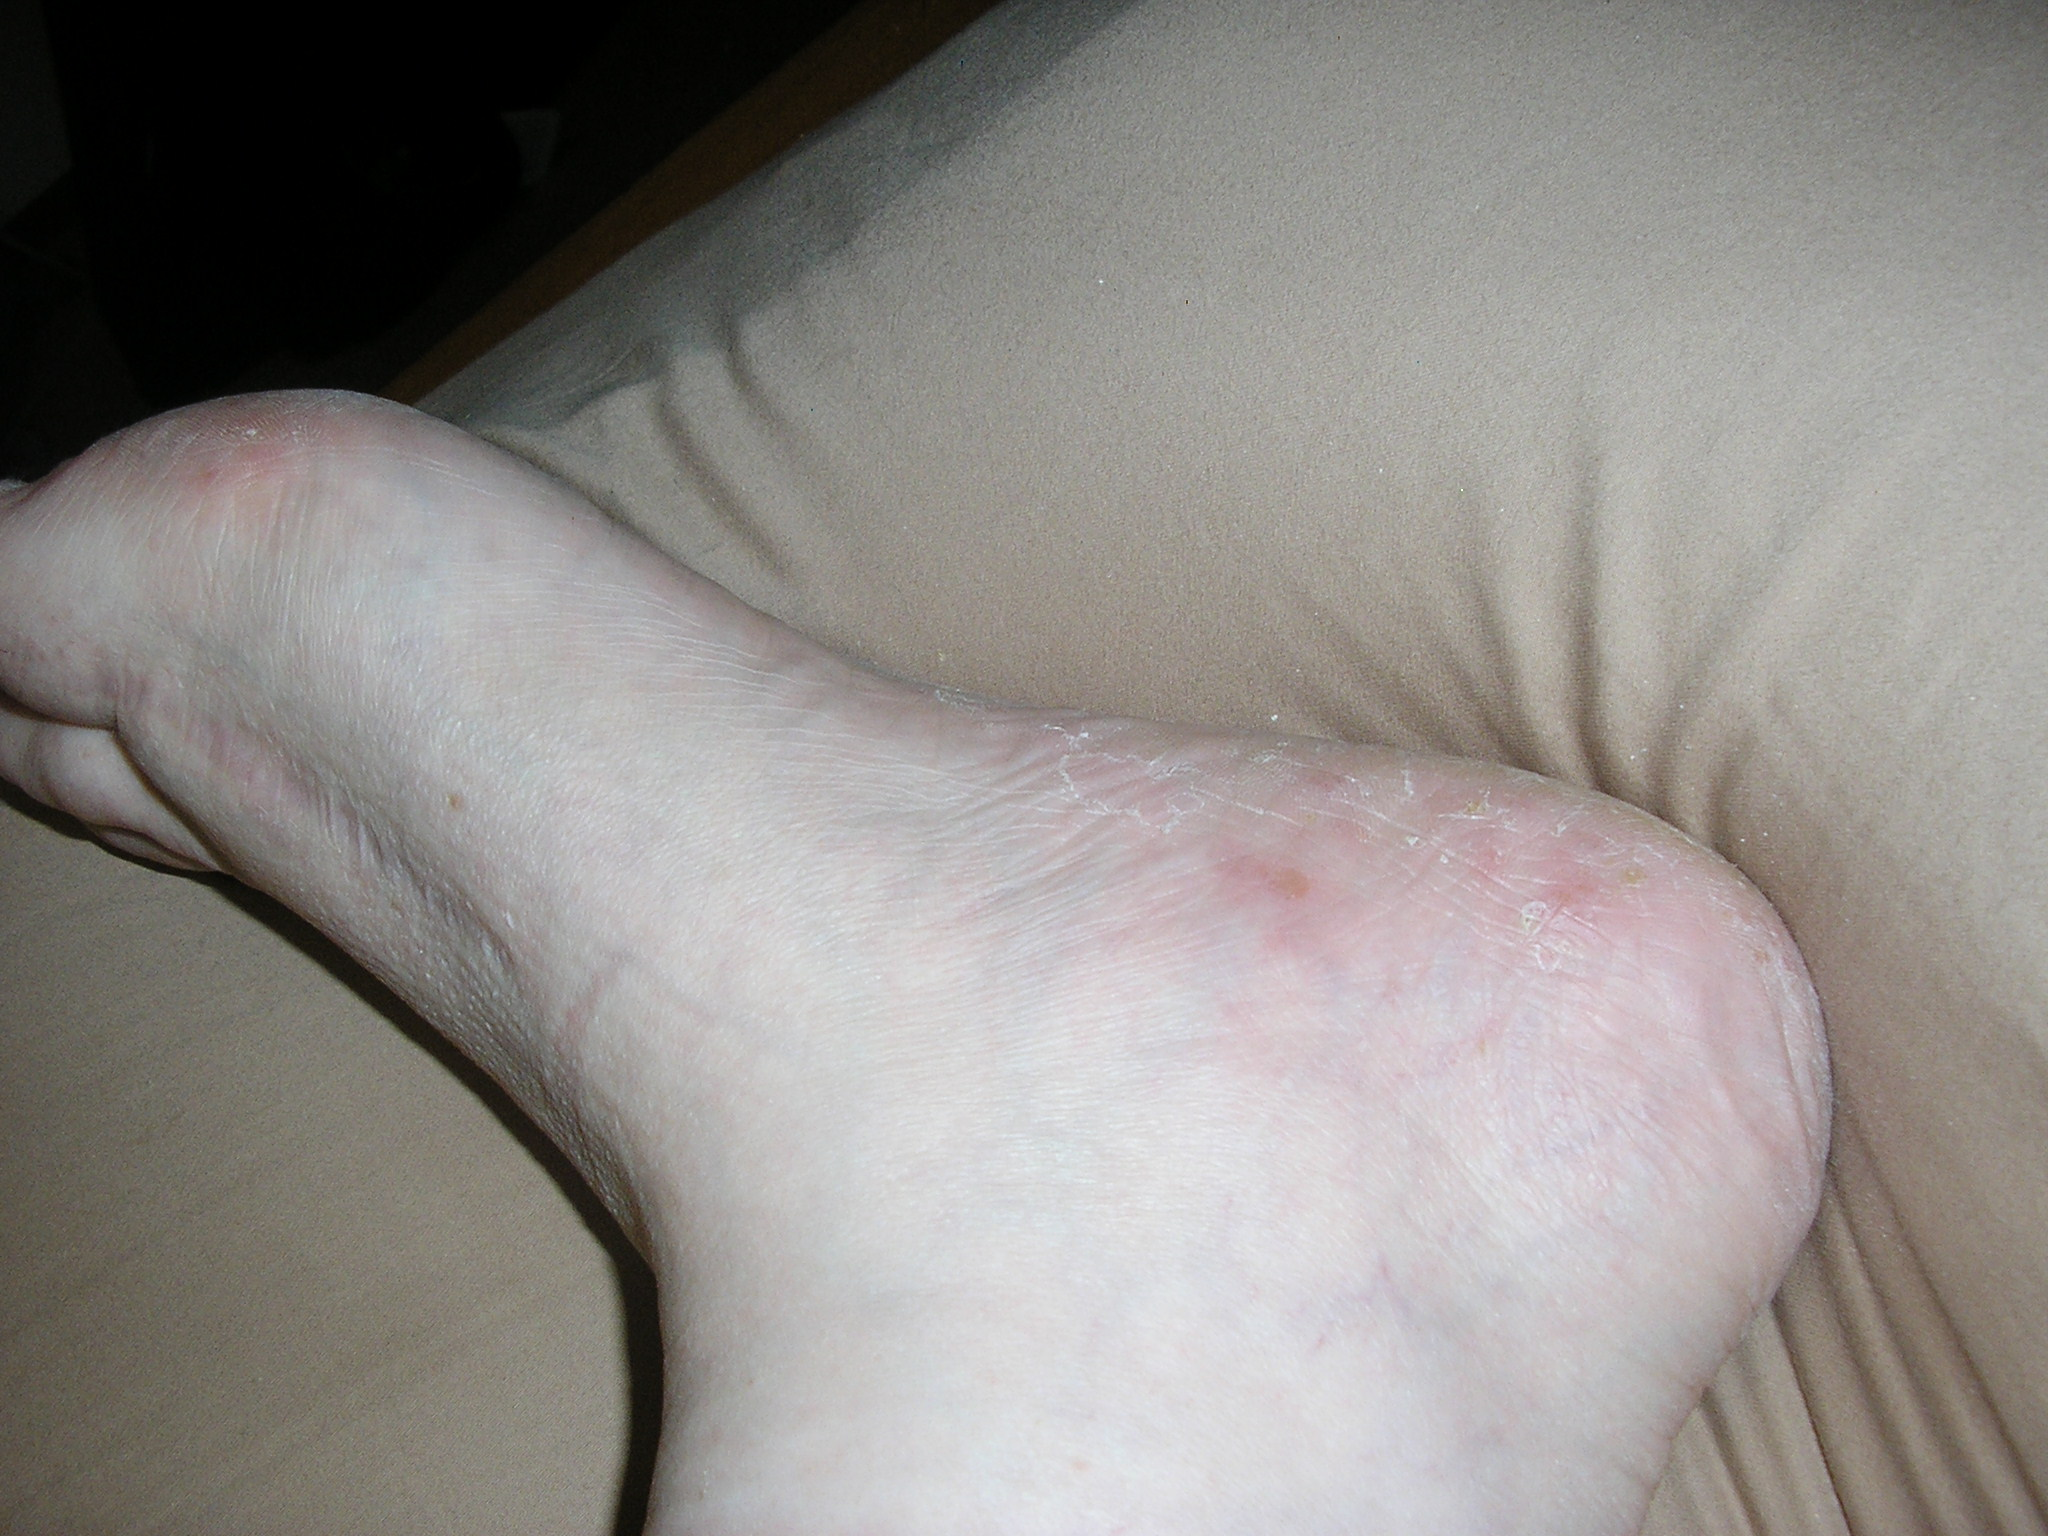 Red Itchy Bumps On Bottom of Foot